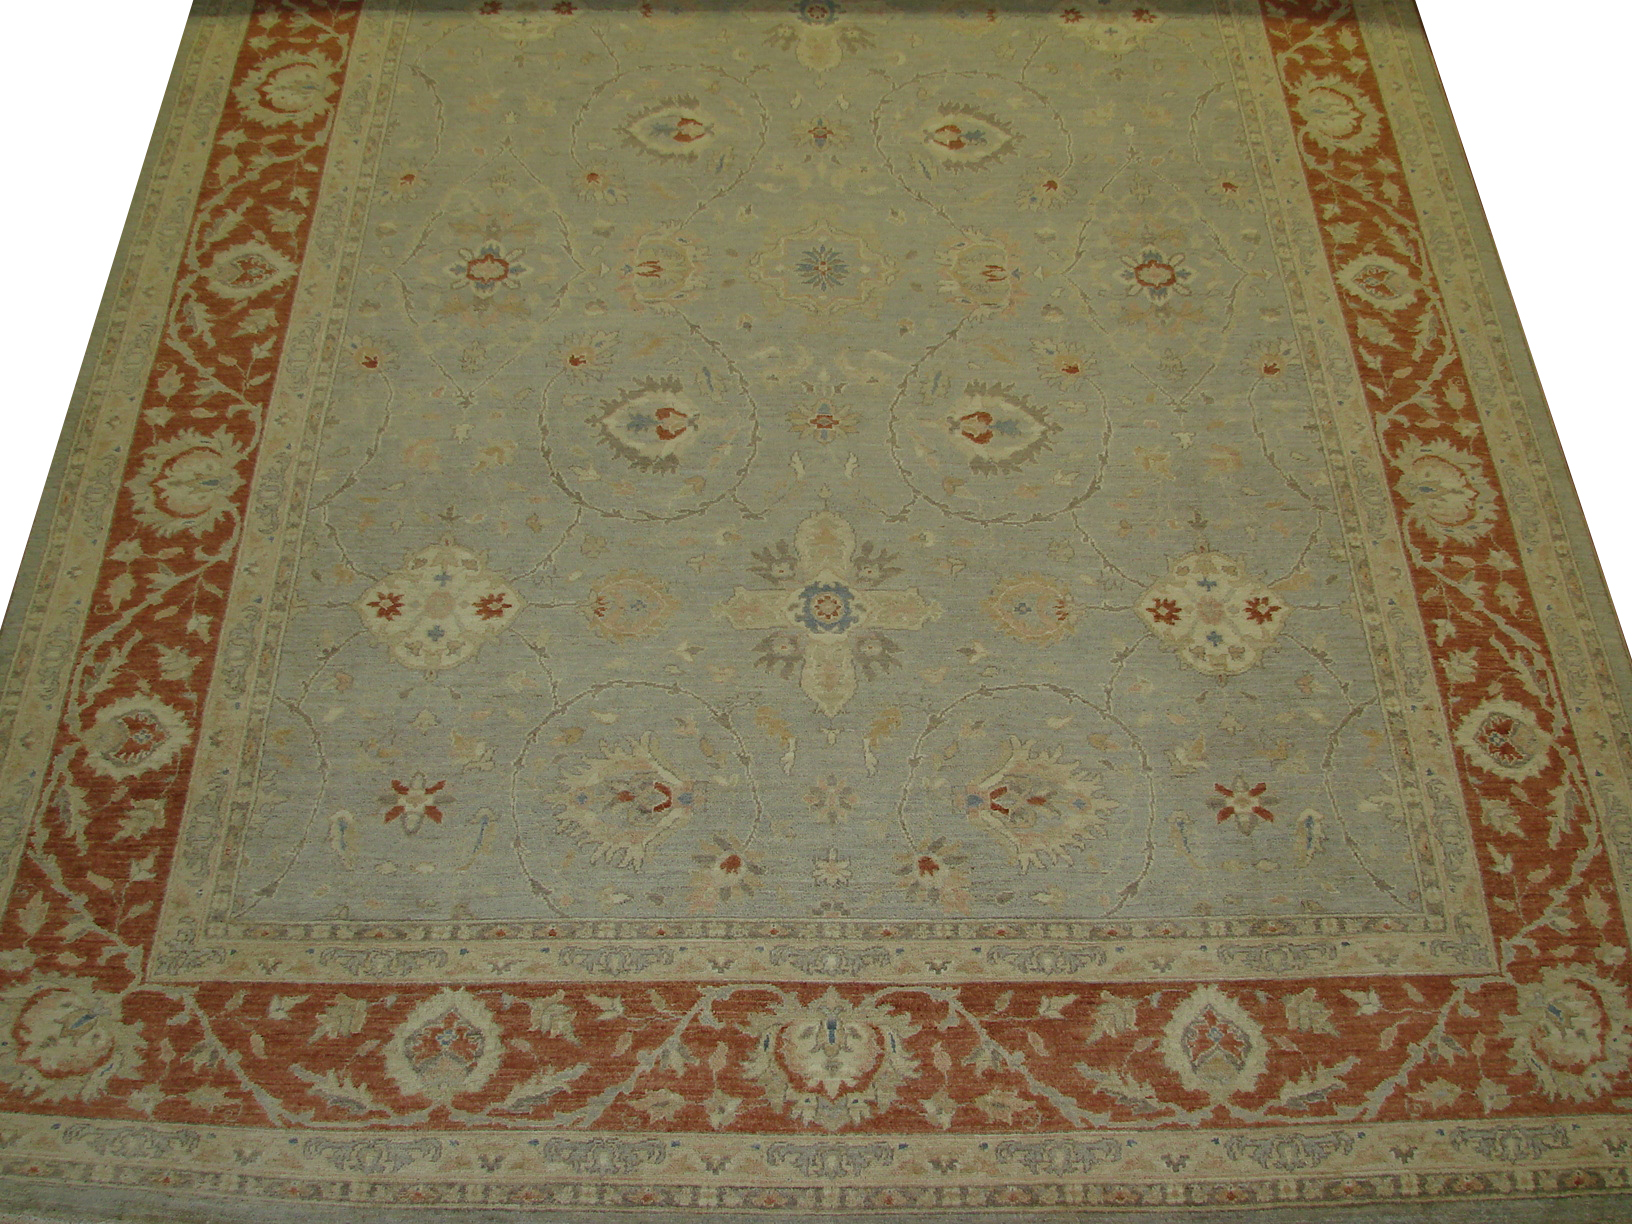 9x12 Peshawar Hand Knotted Wool Area Rug - MR13921